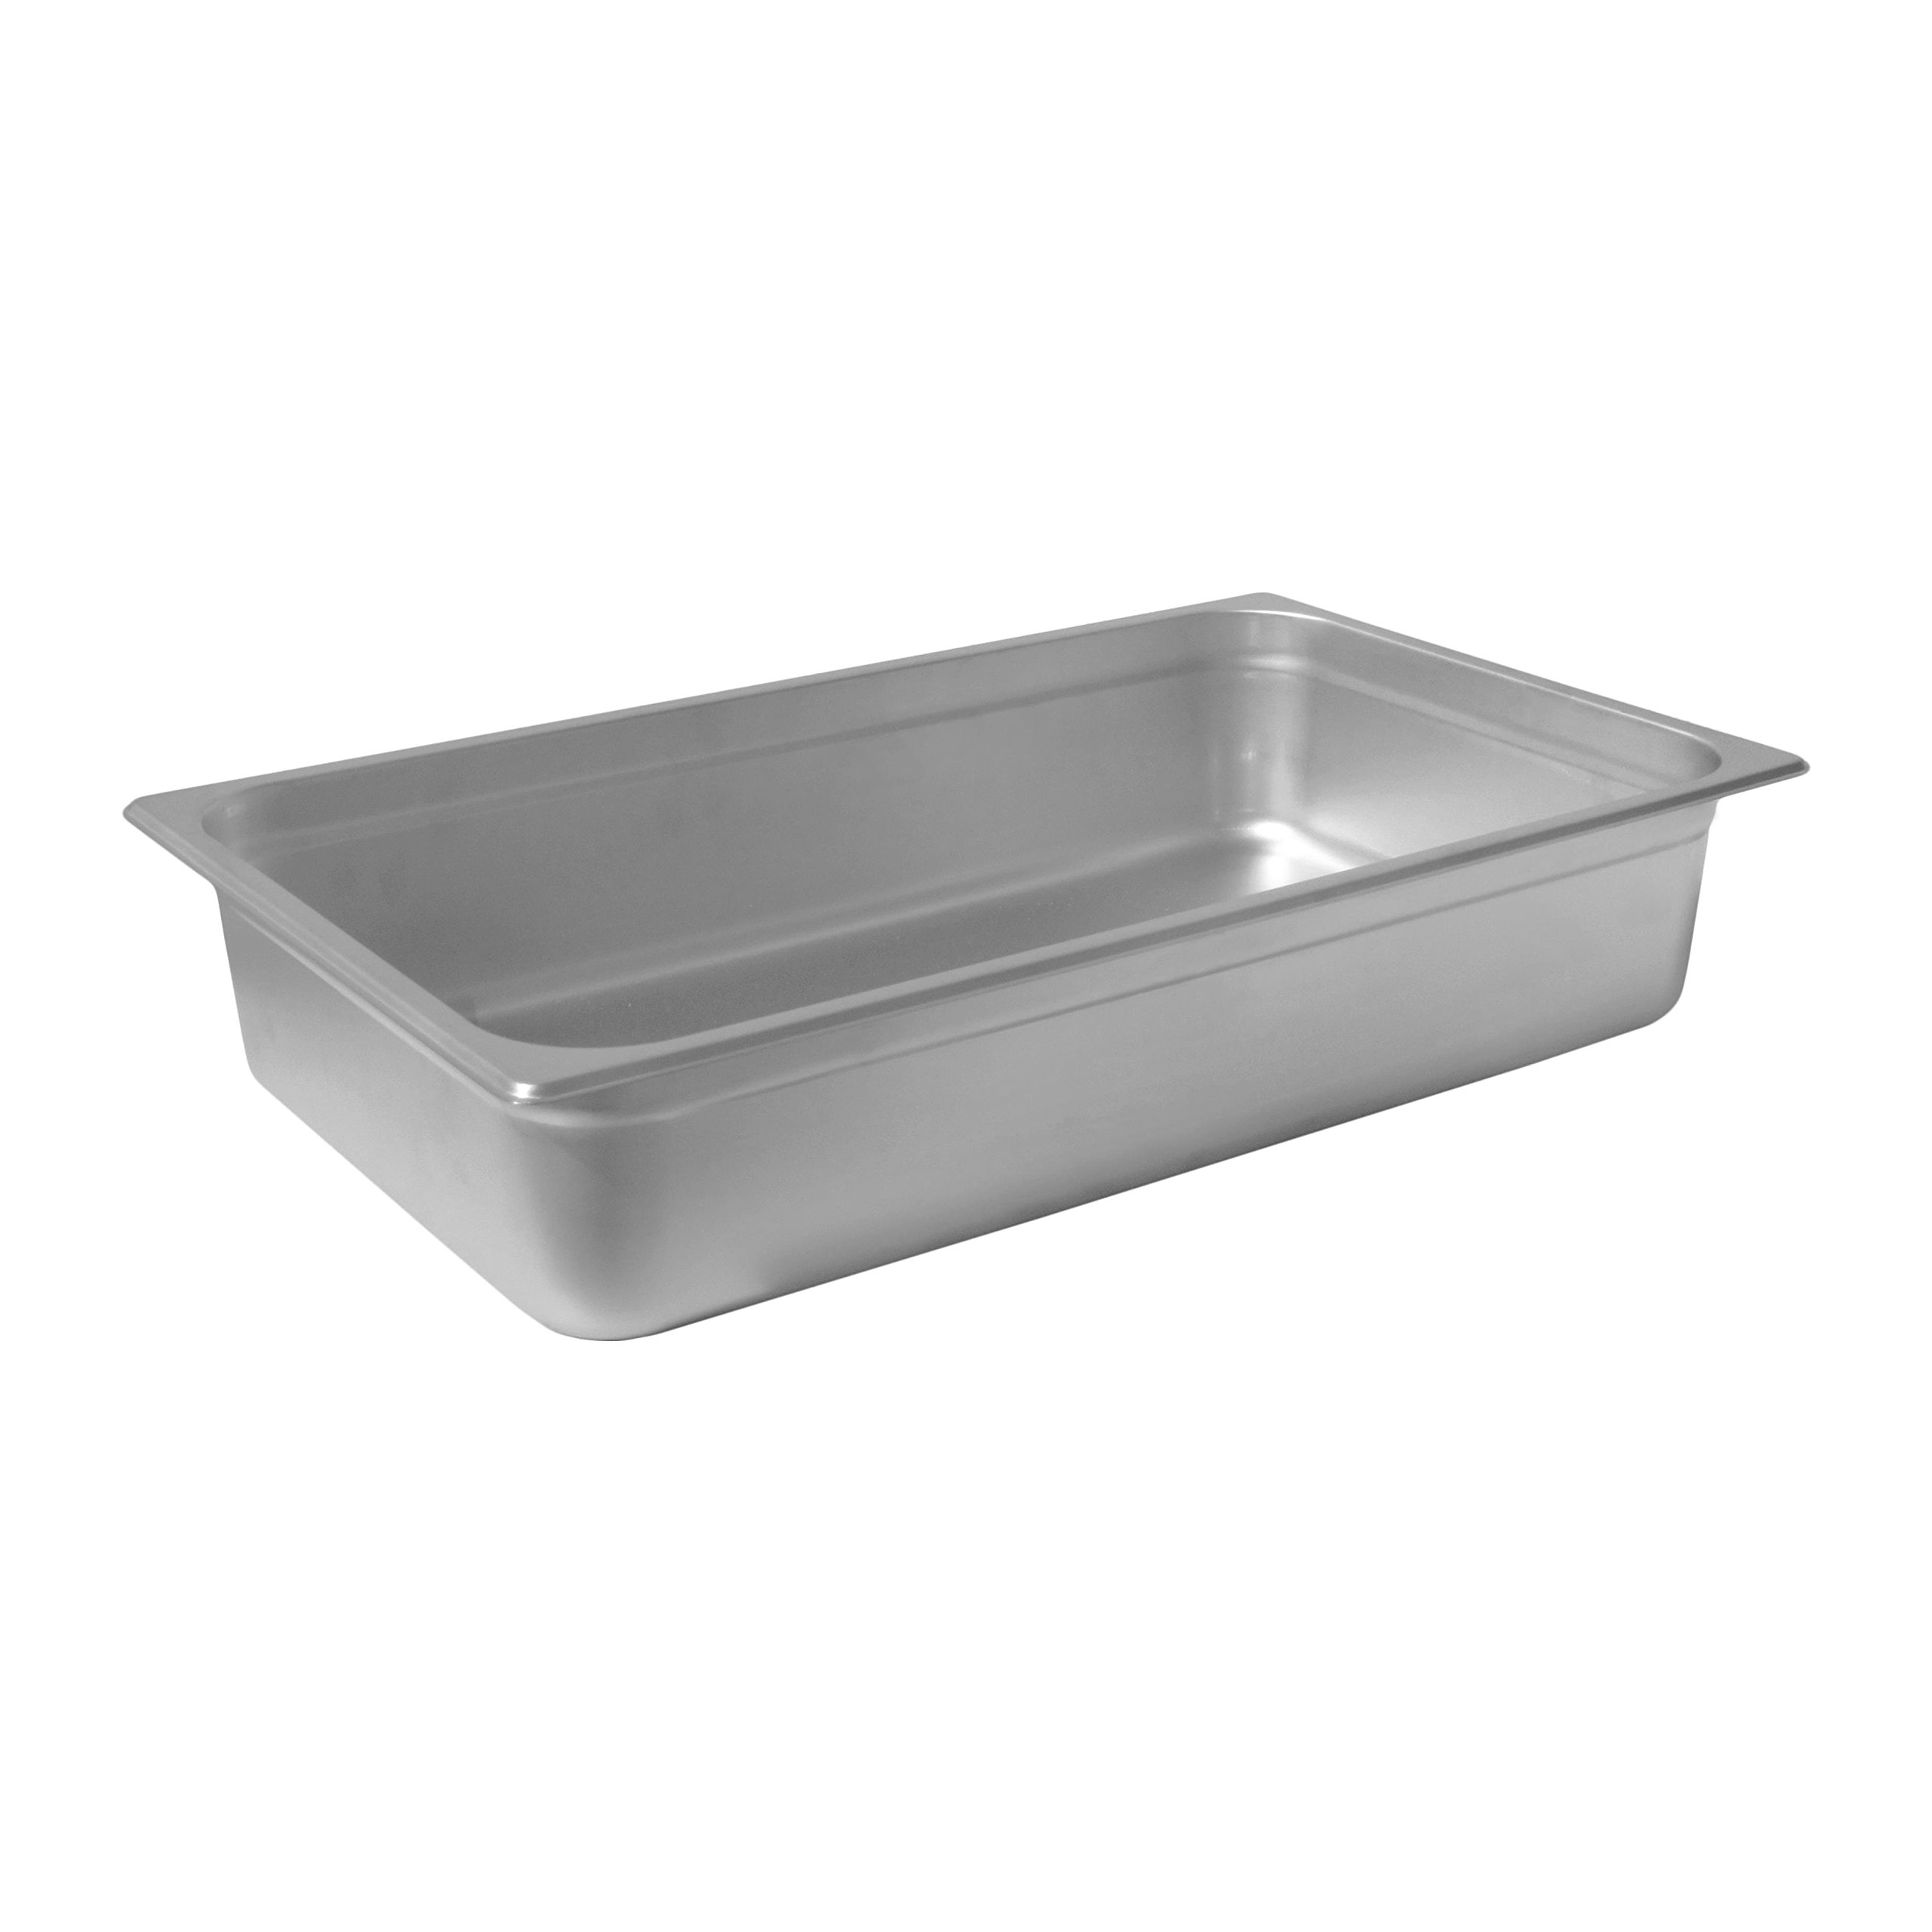 Chef's Supreme - 4'' Full Size Stainless Steam Table Pan by Chef's Supreme